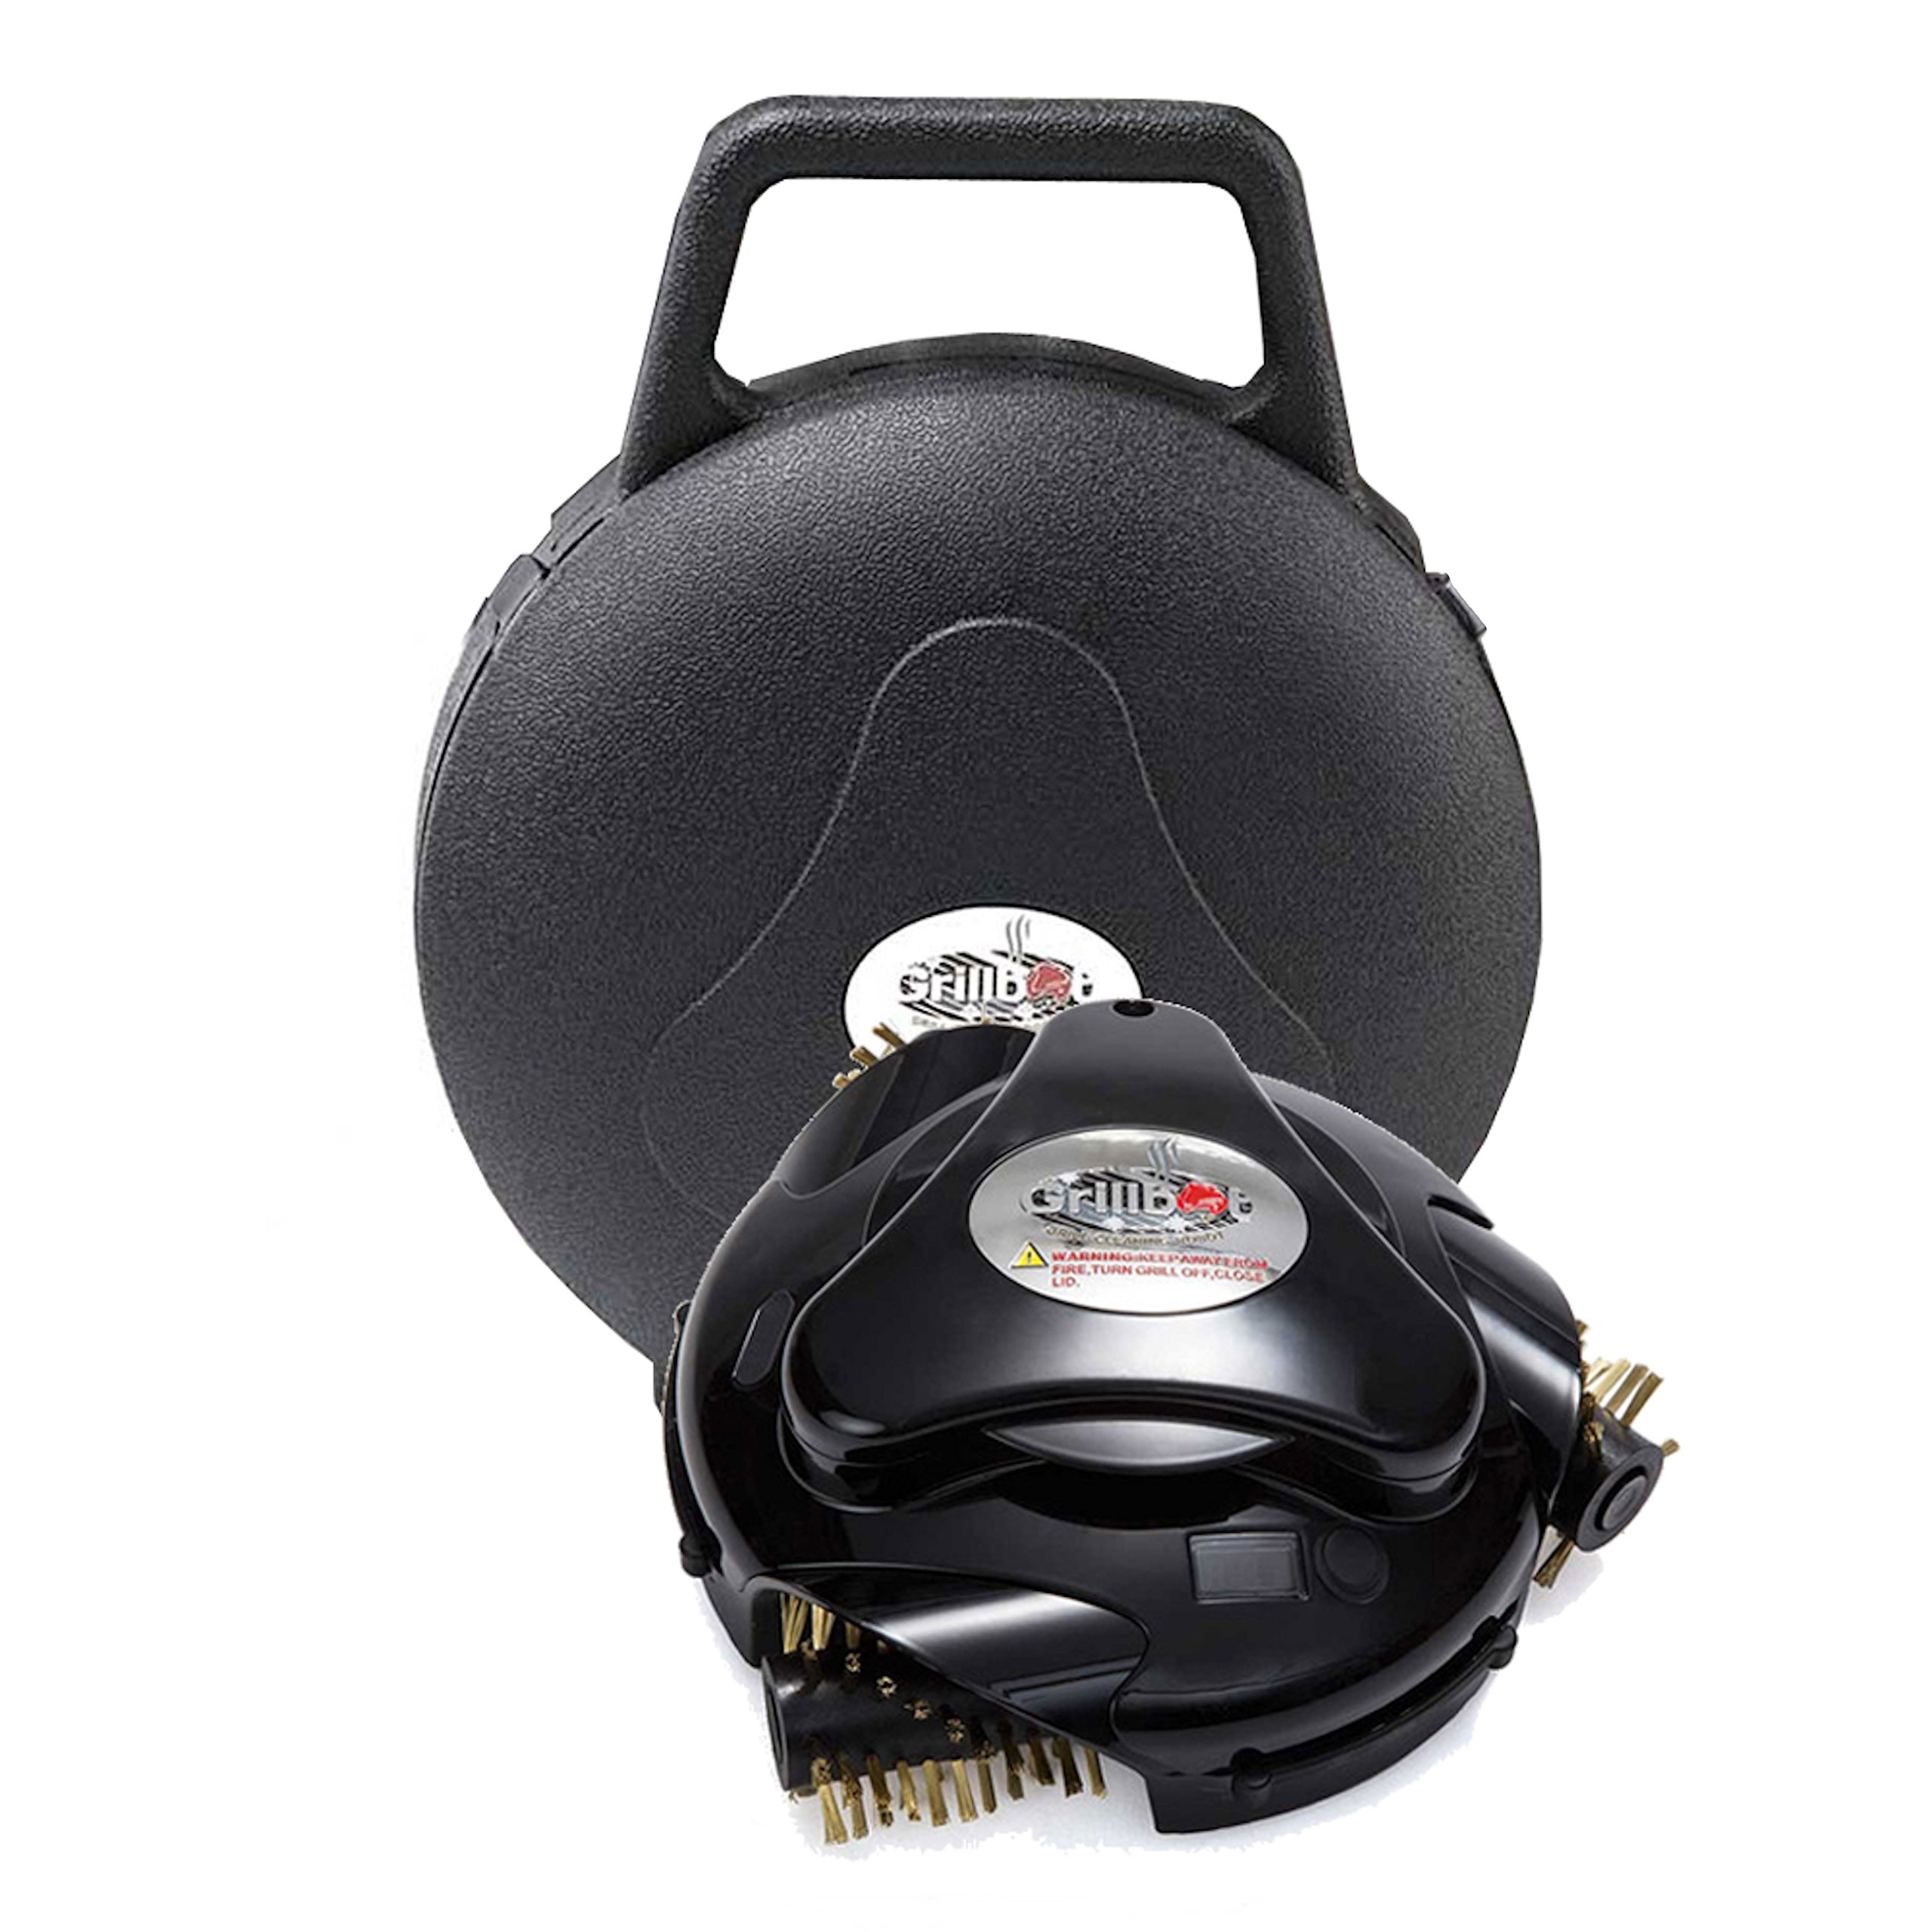 Grillbot Automatic Grill Scrubber and Cleaner with Protective Carrying Case, includes pre-installed Brass Brushes (Black) by Grillbot